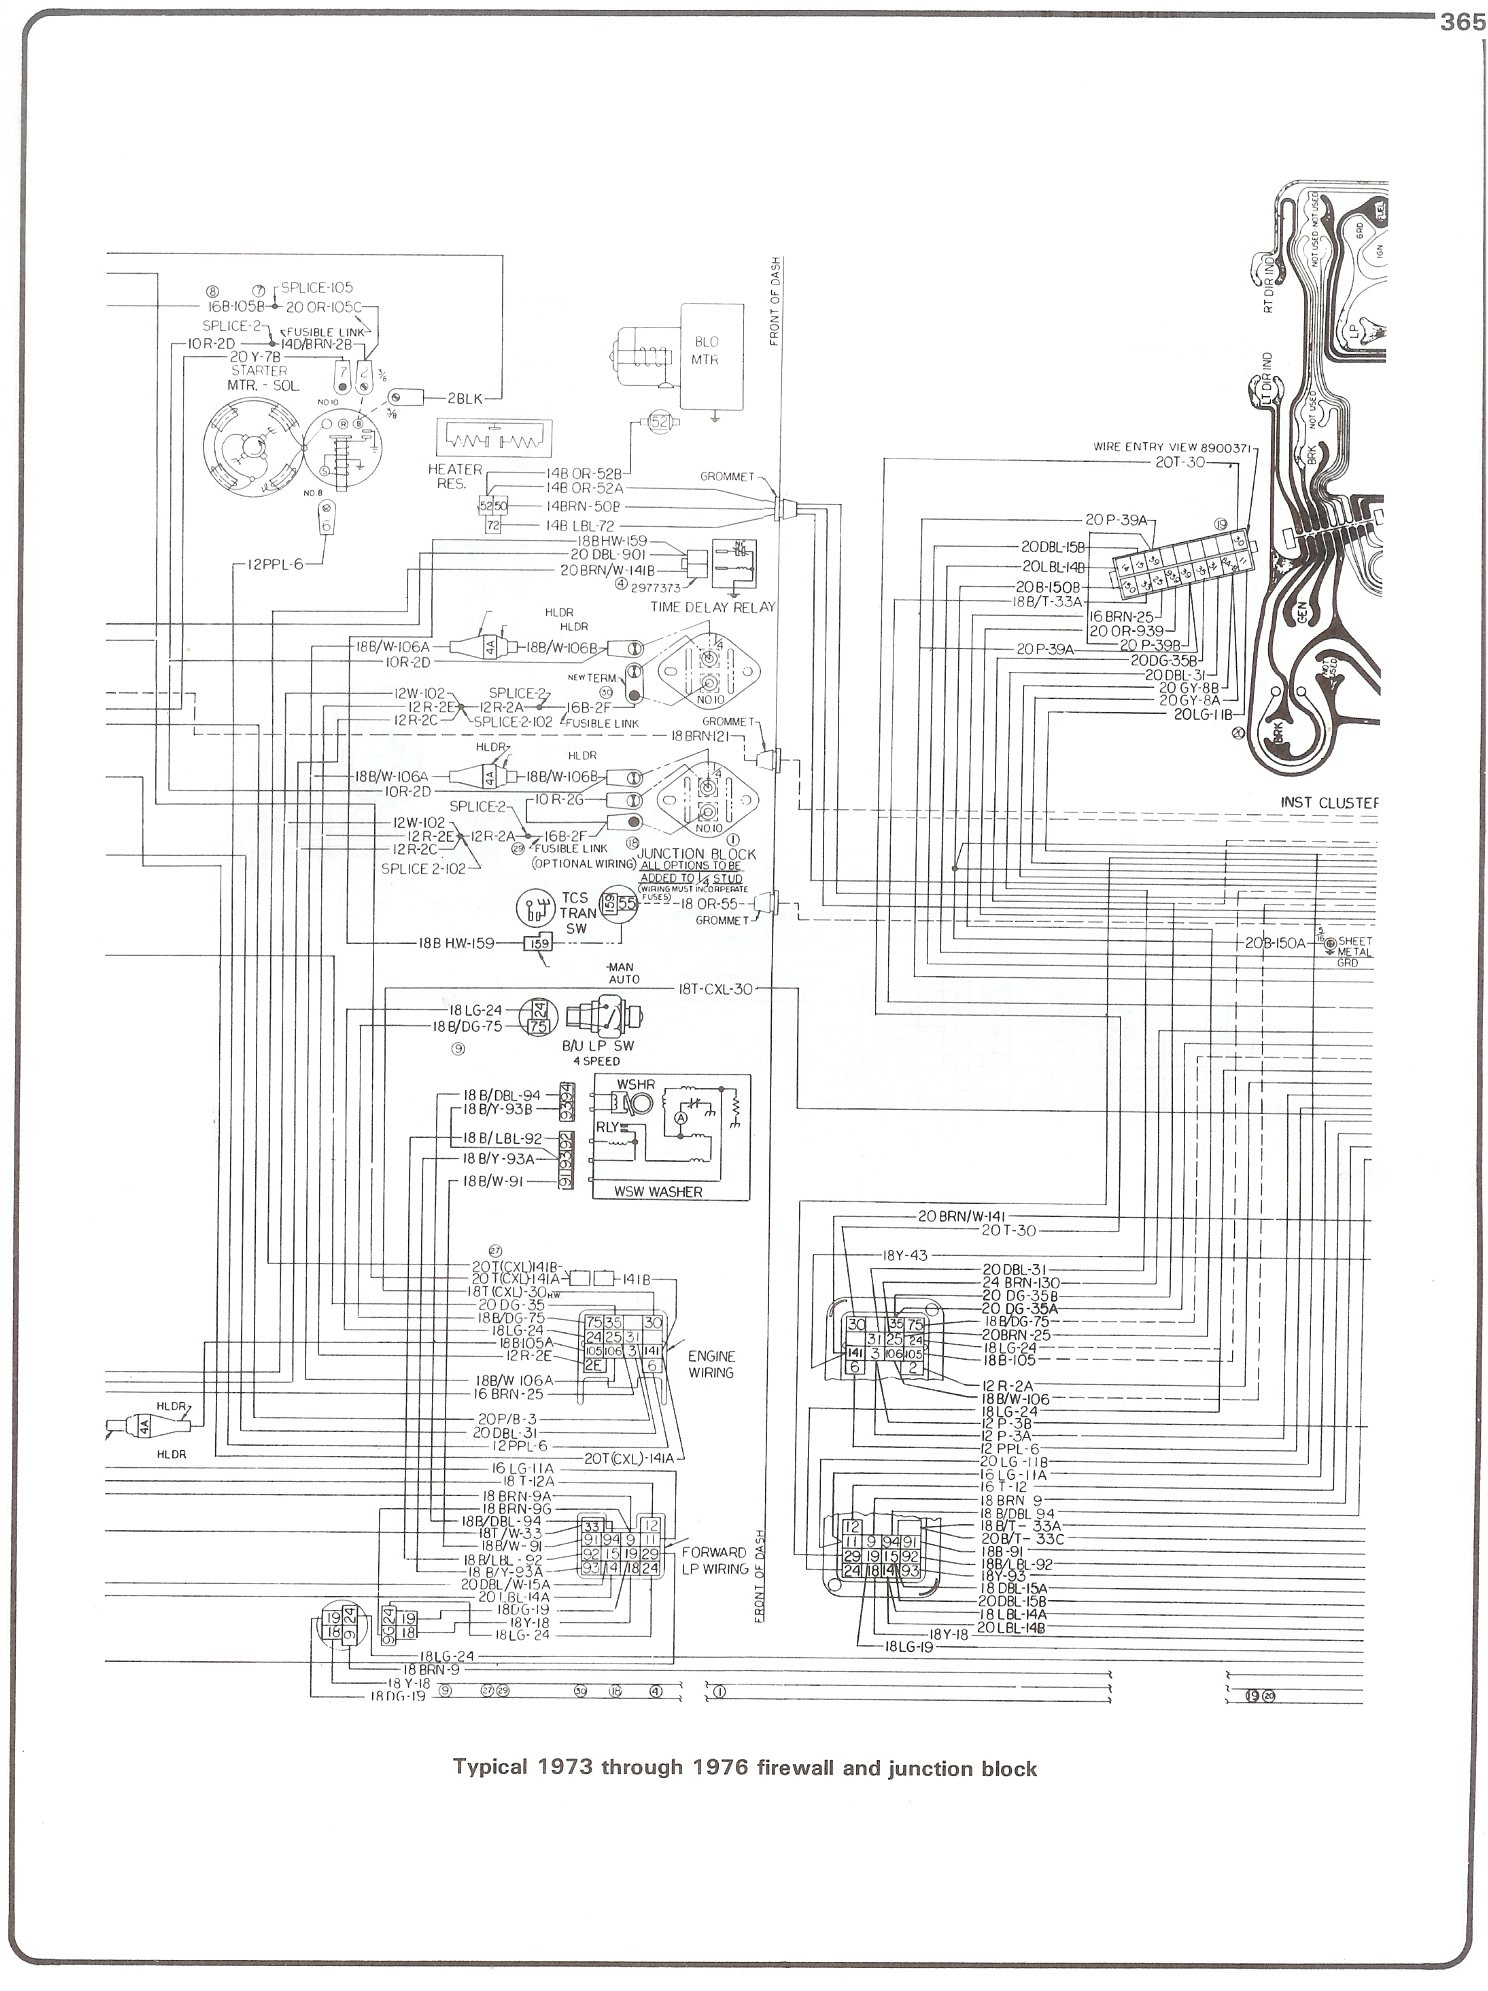 73 76_firewall_junct complete 73 87 wiring diagrams 1984 chevy c10 wiring diagram at gsmx.co